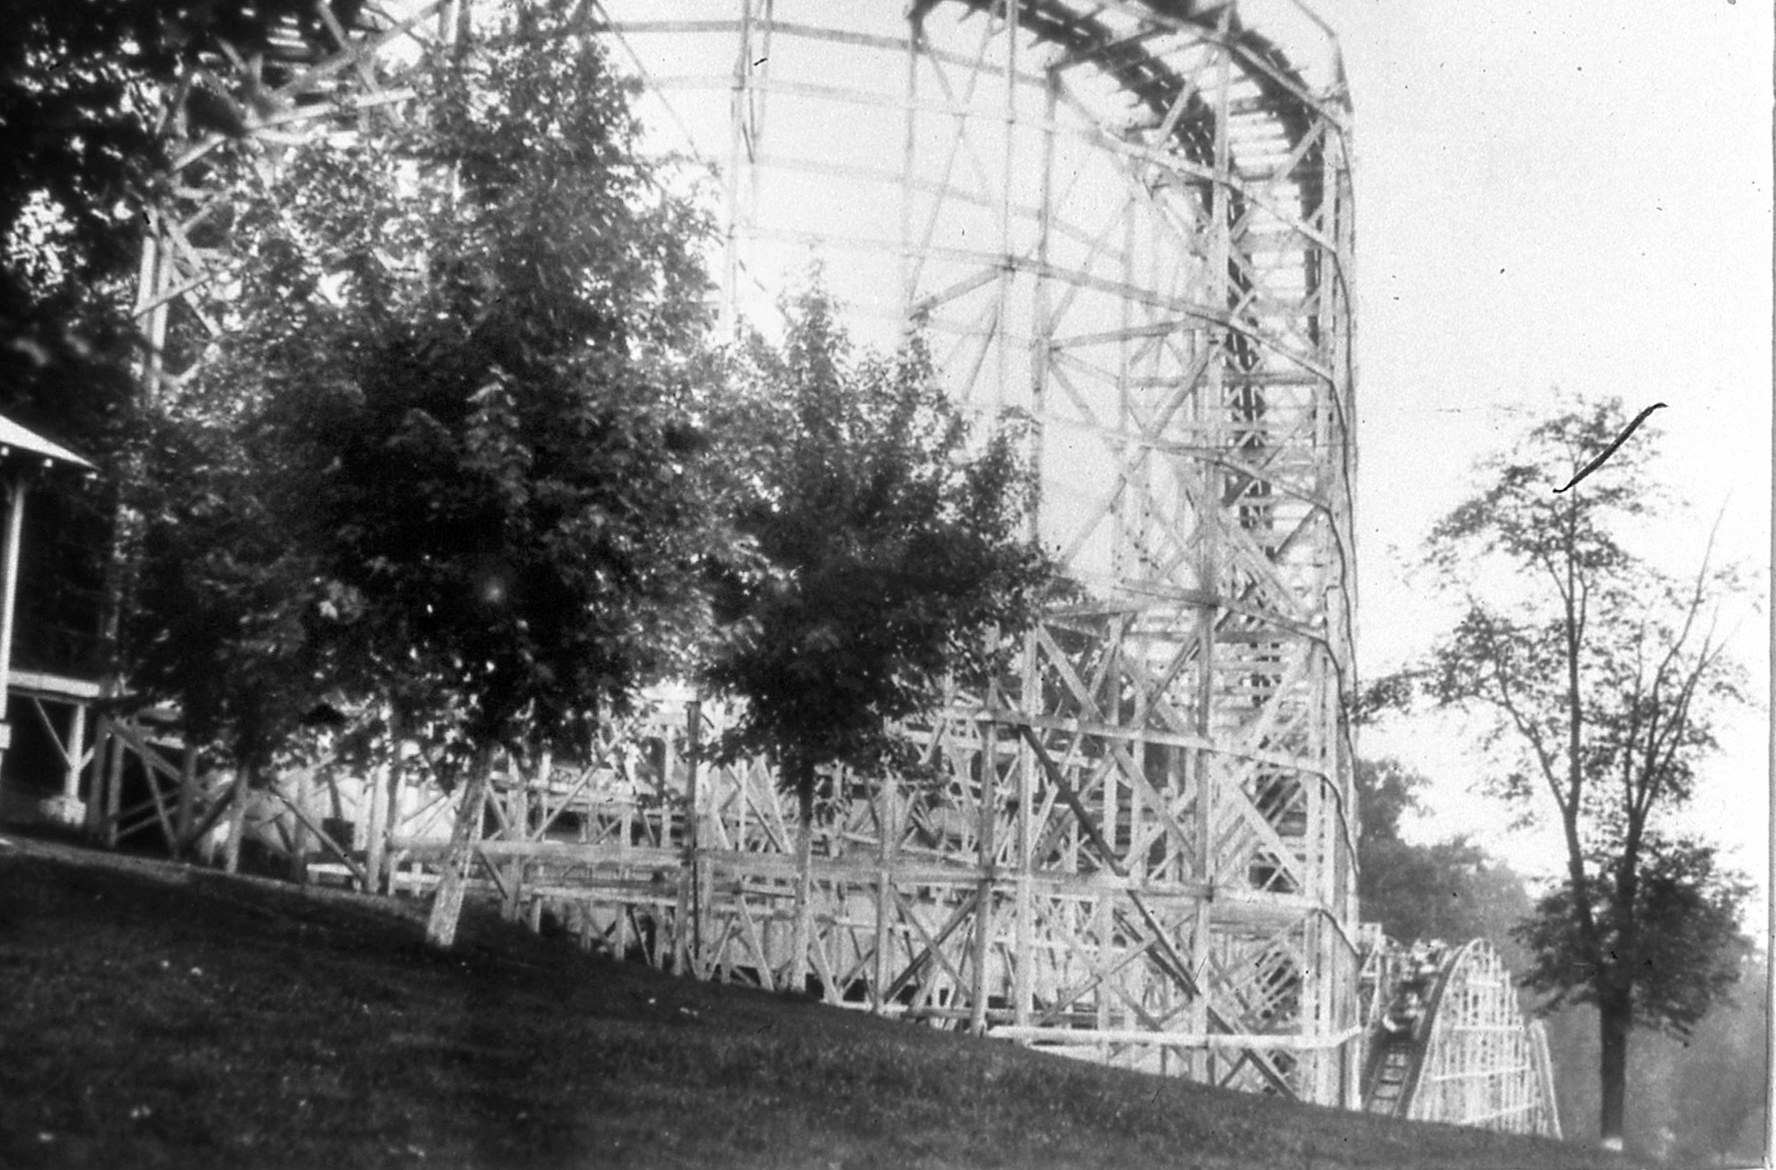 The Alpine Dips Roller Coaster